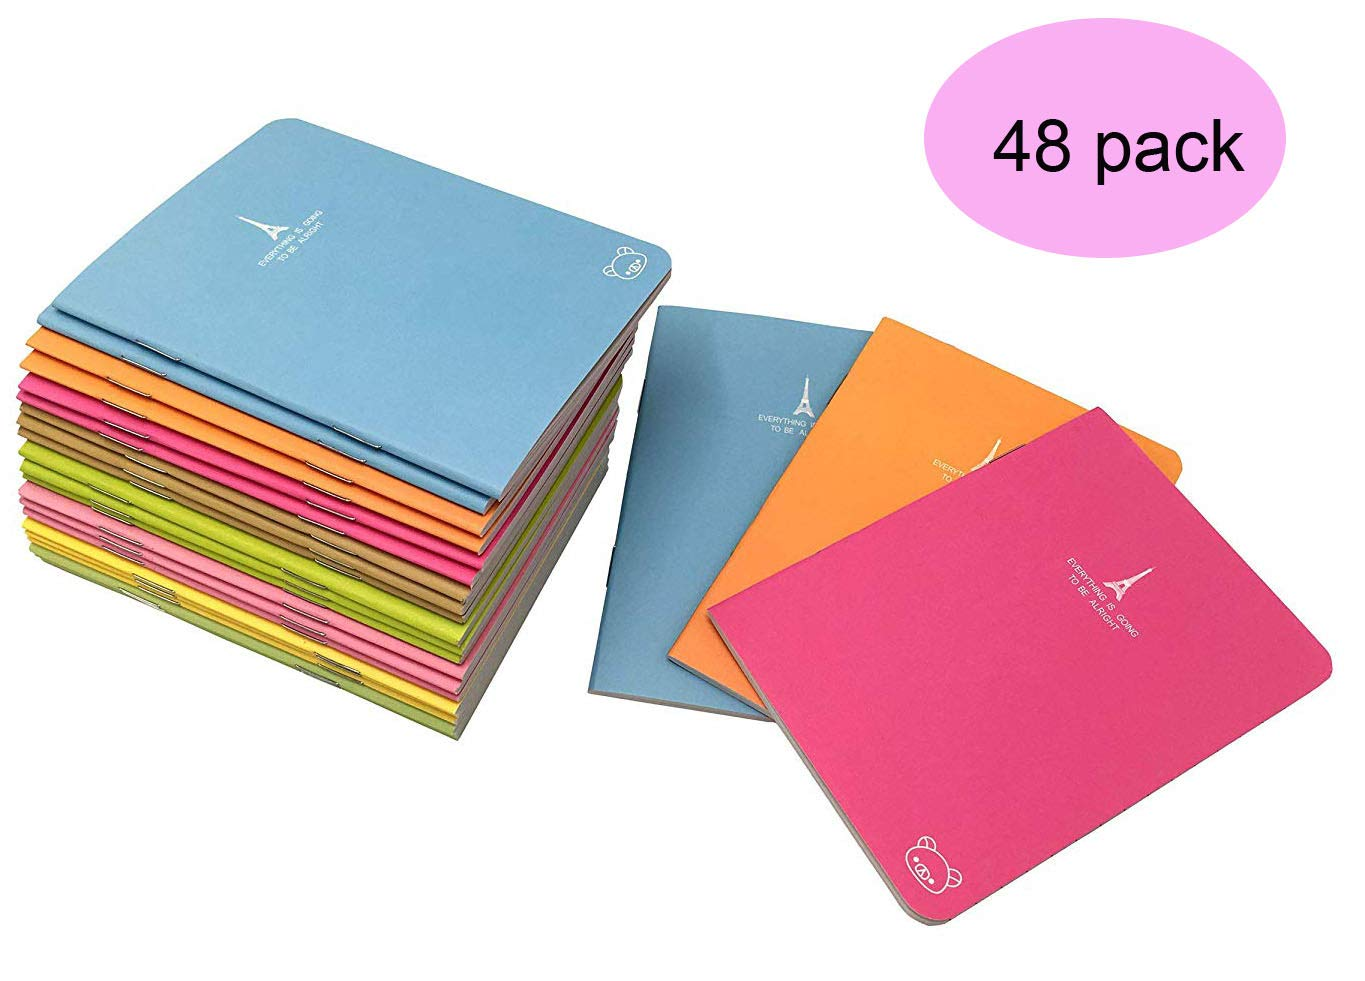 Pack of 48 Pocket Notebook Set (3.5'' x5 '') Candy Colors Portable Pocket Pal Super Mini Journals Portable Steno Note Books Mini Notepads(48pcs) by Yansanido